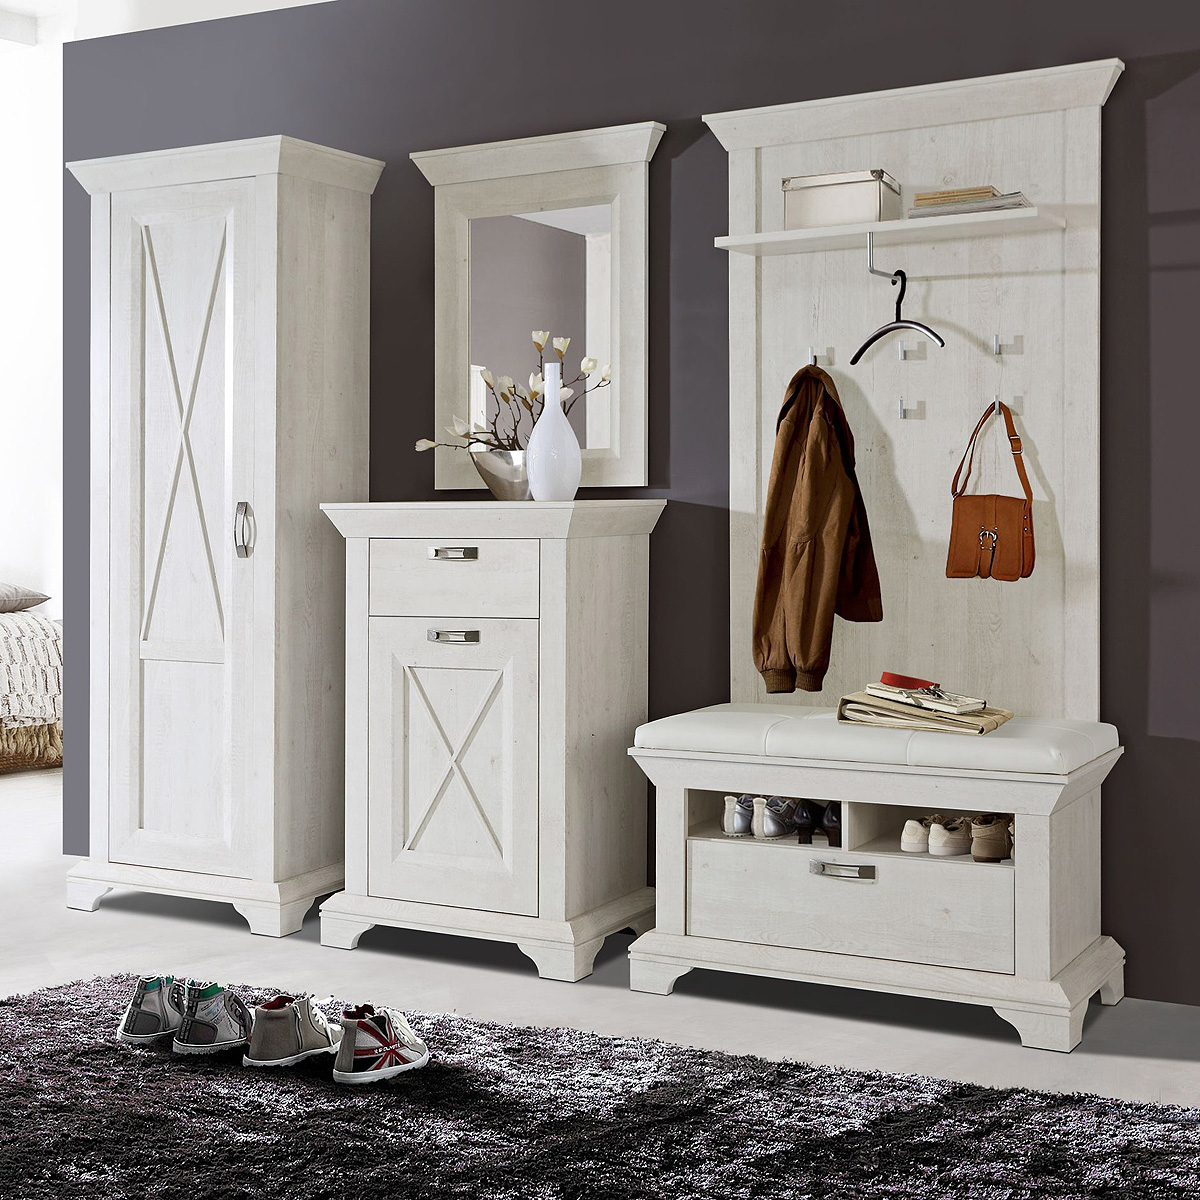 garderobenset kashmir garderobe schrank bank paneel kommode spiegel pinie wei ebay. Black Bedroom Furniture Sets. Home Design Ideas